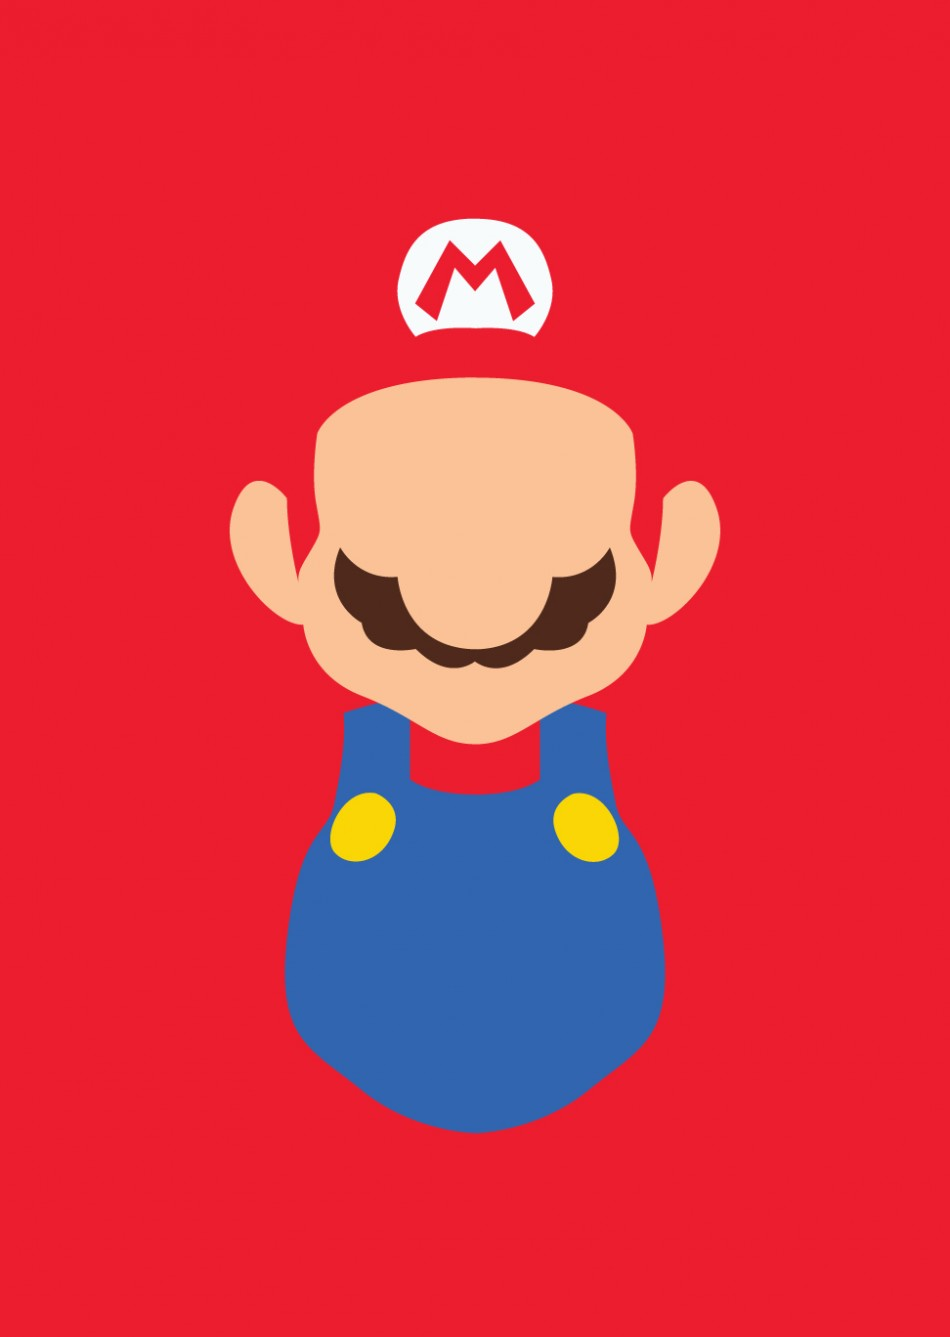 mario iphone 6 wallpaper wallpapersafari